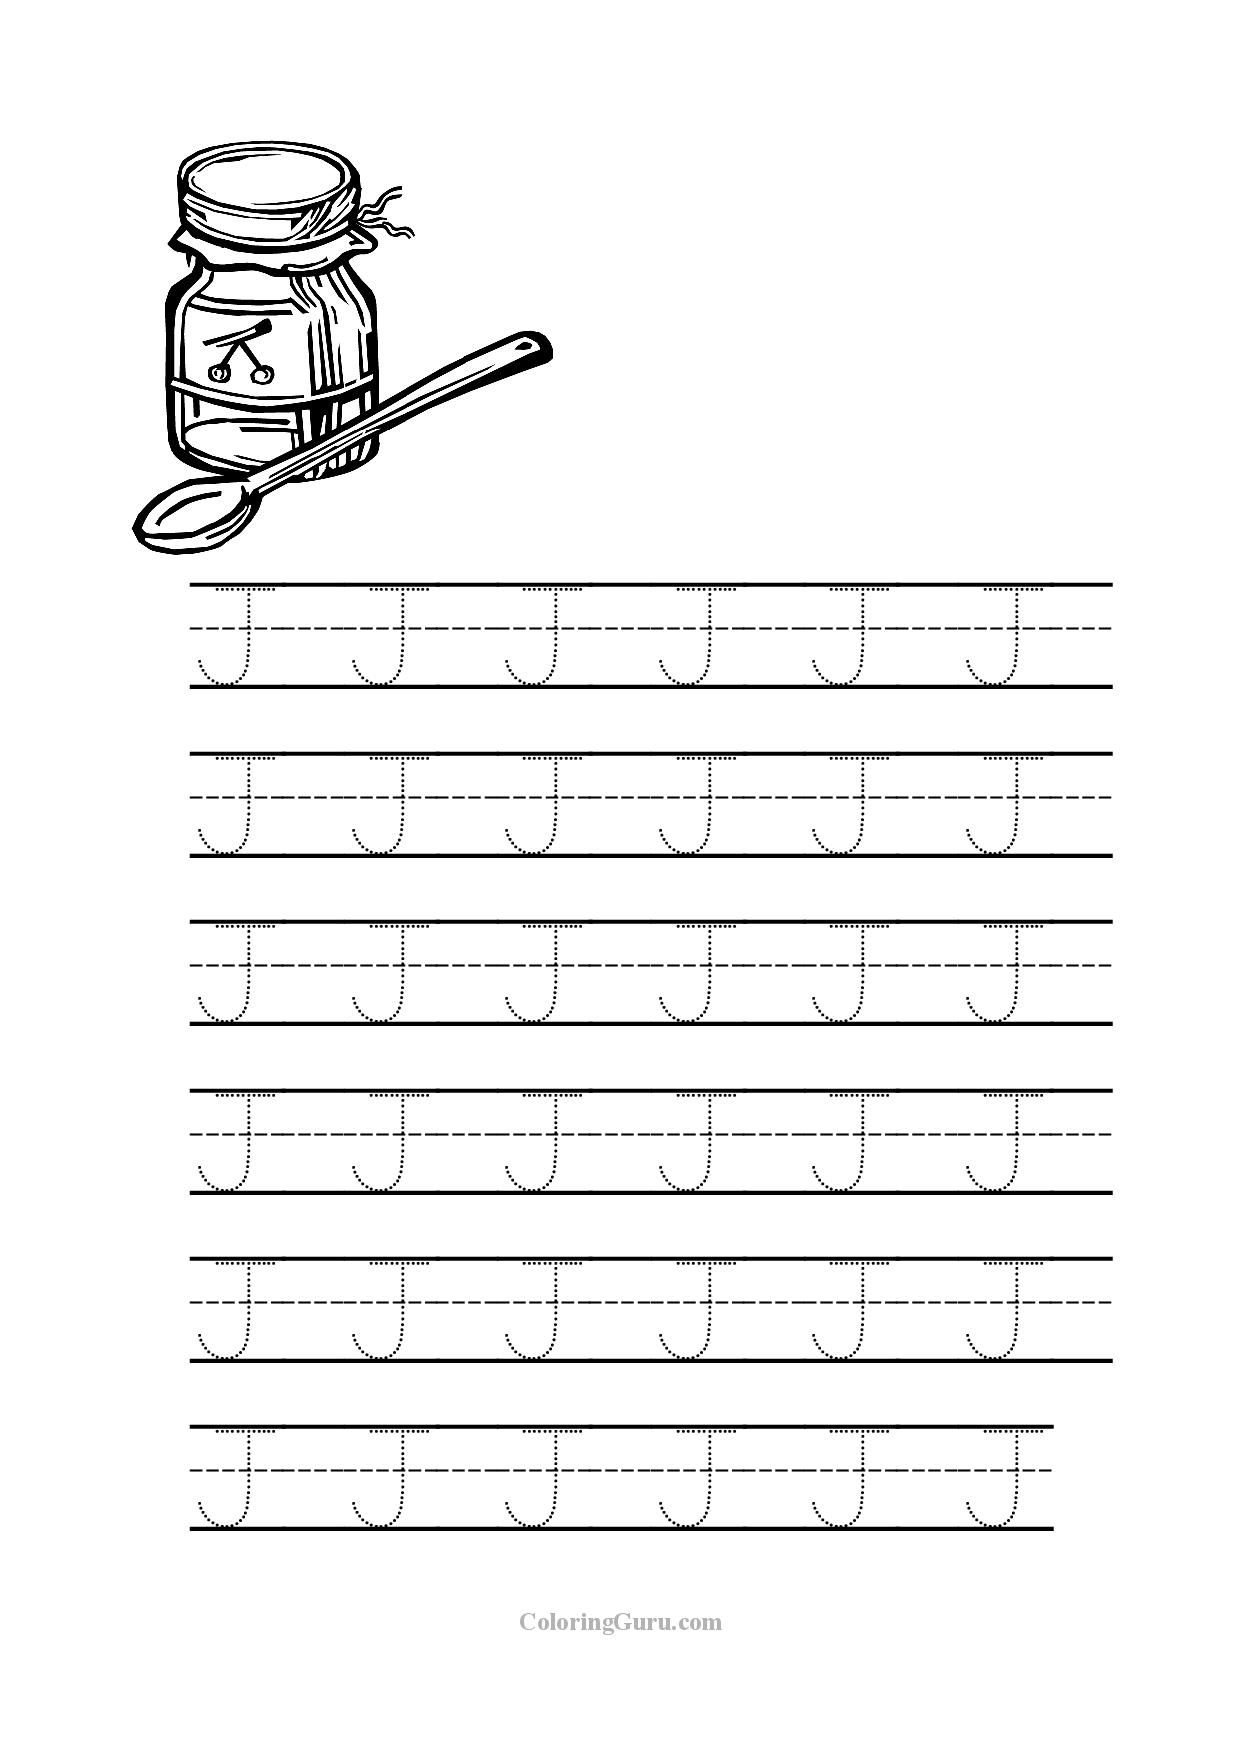 Free Printable Tracing Letter J Worksheets For Preschool pertaining to Tracing Letter J Preschool